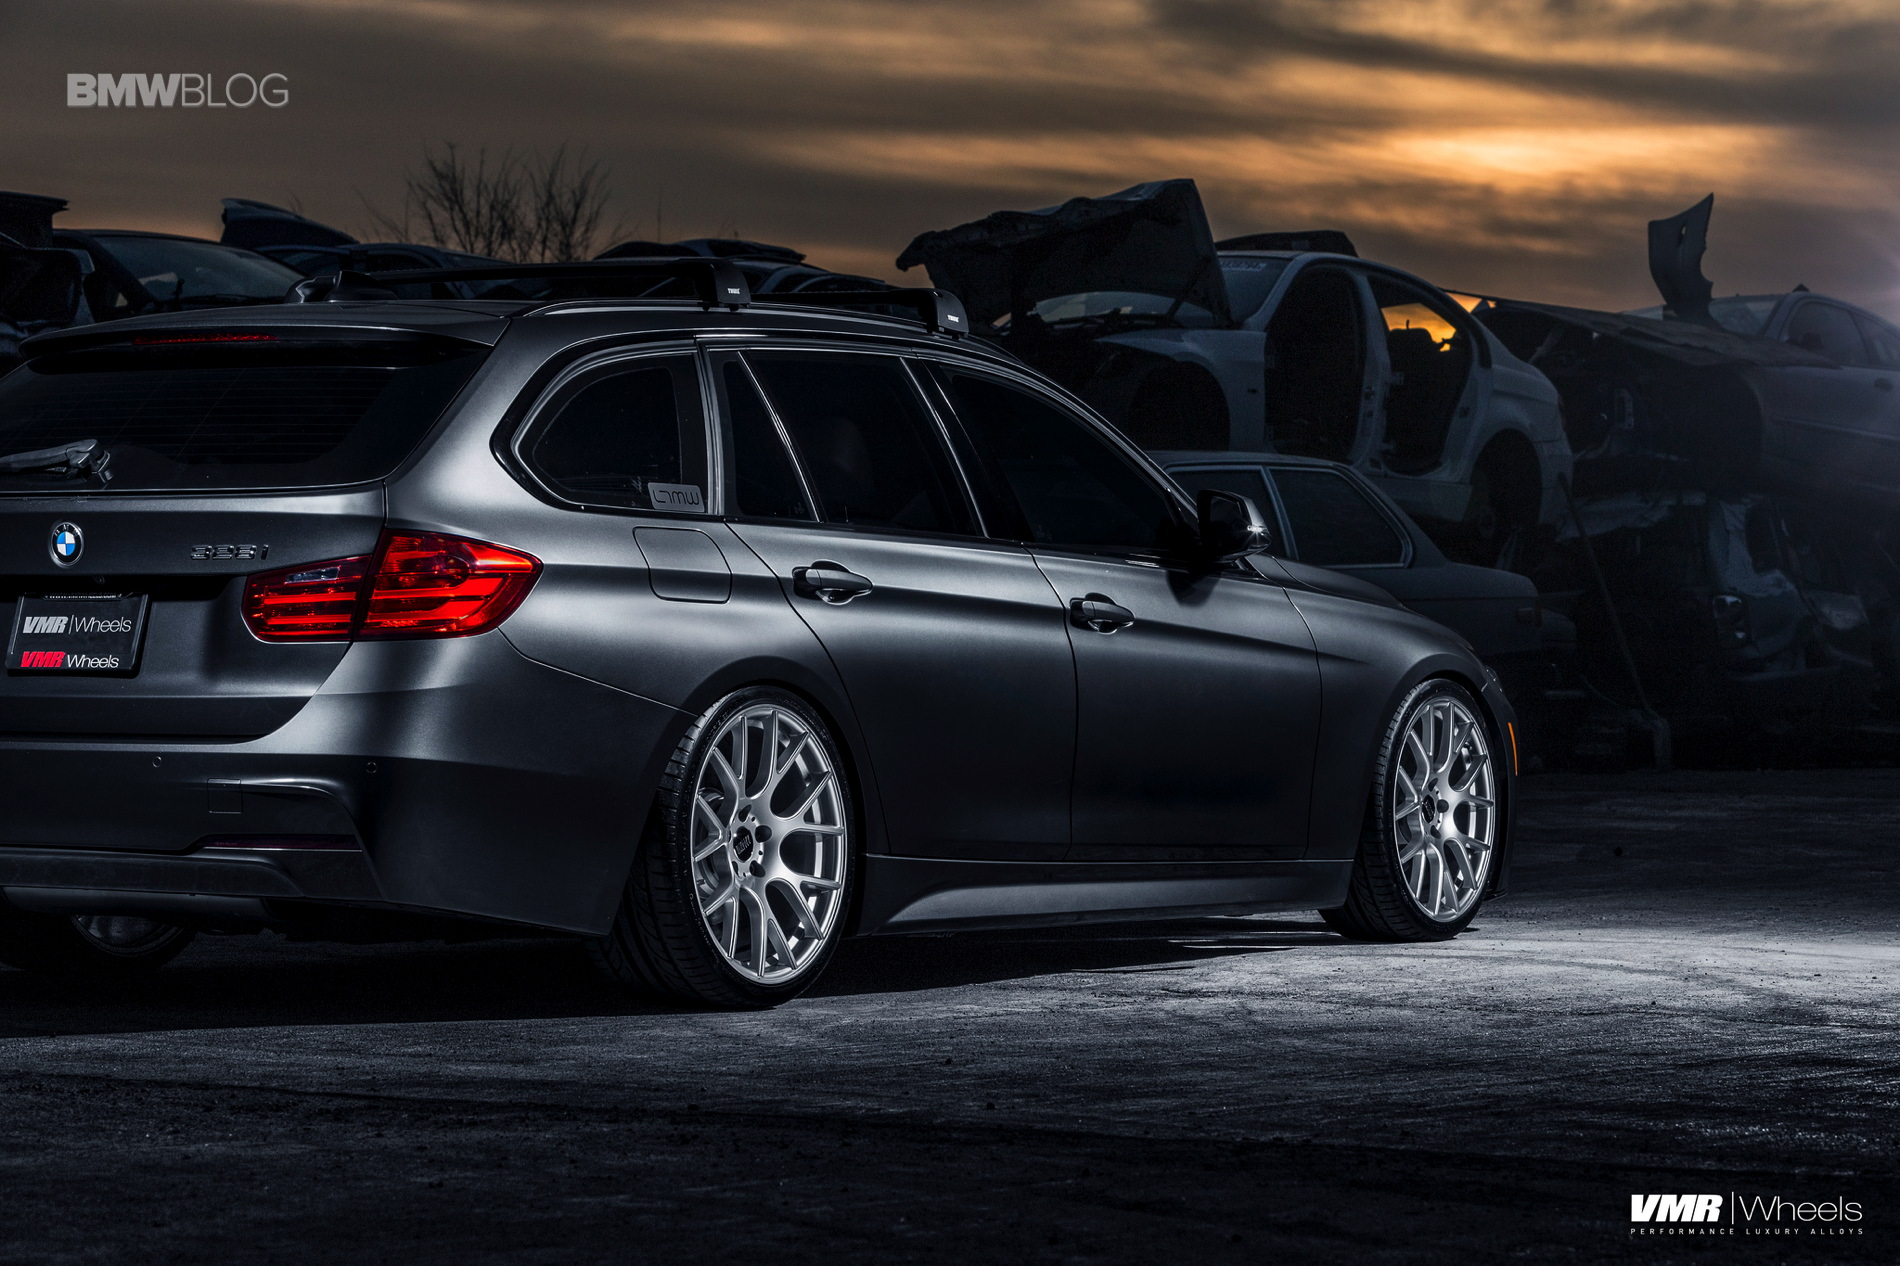 bmw f31 sports wagon gets some visual upgrades and custom. Black Bedroom Furniture Sets. Home Design Ideas